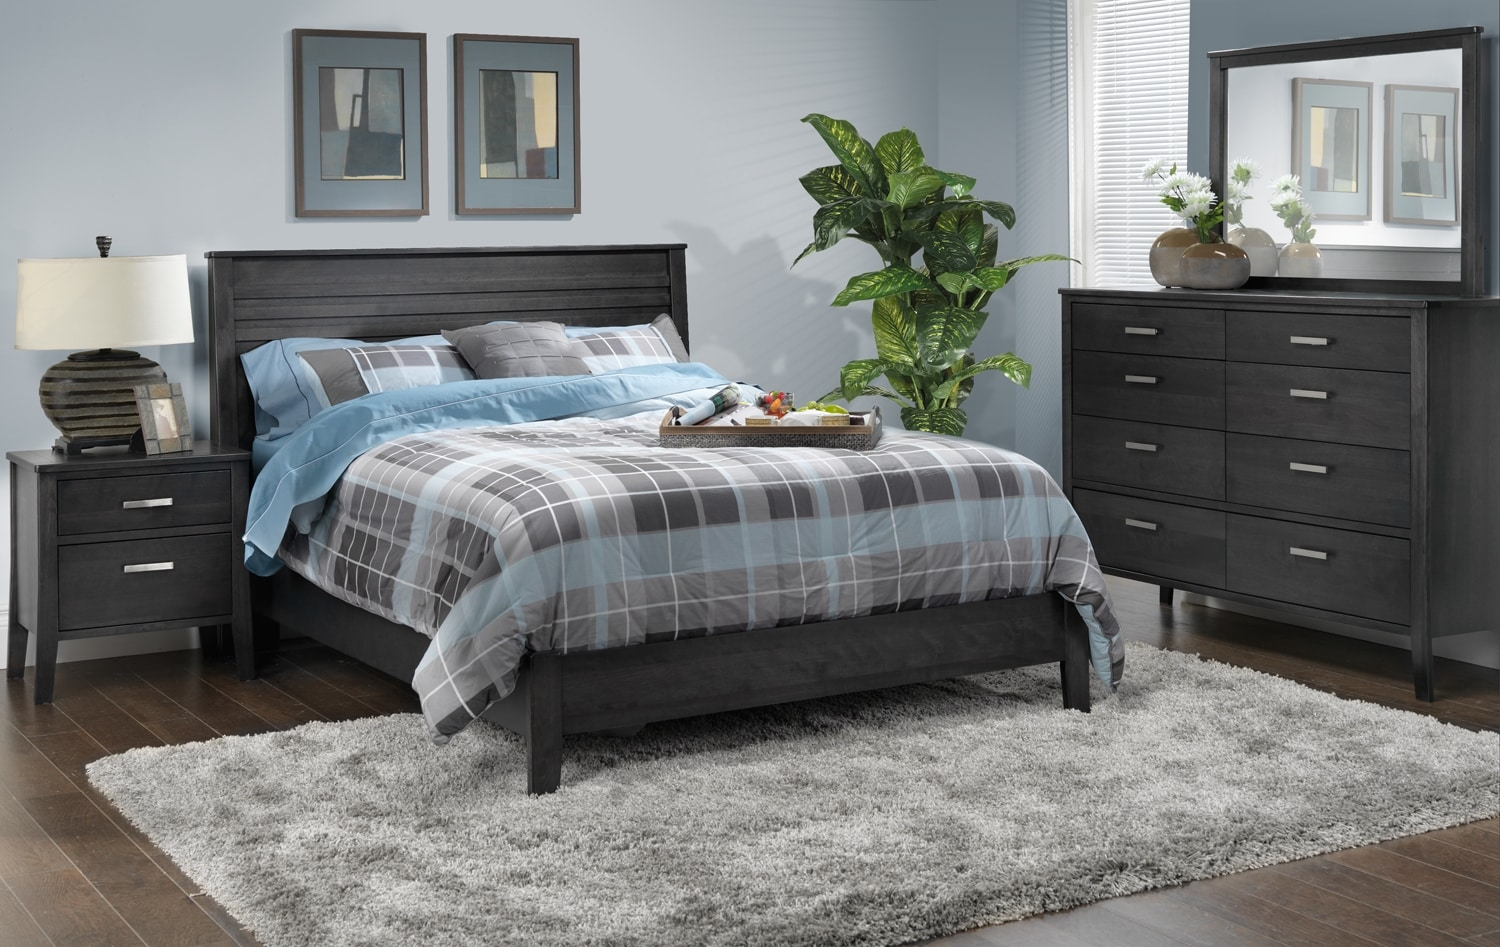 Bedroom Furniture - Yorkville 5-Piece Queen Bedroom Set - Charcoal